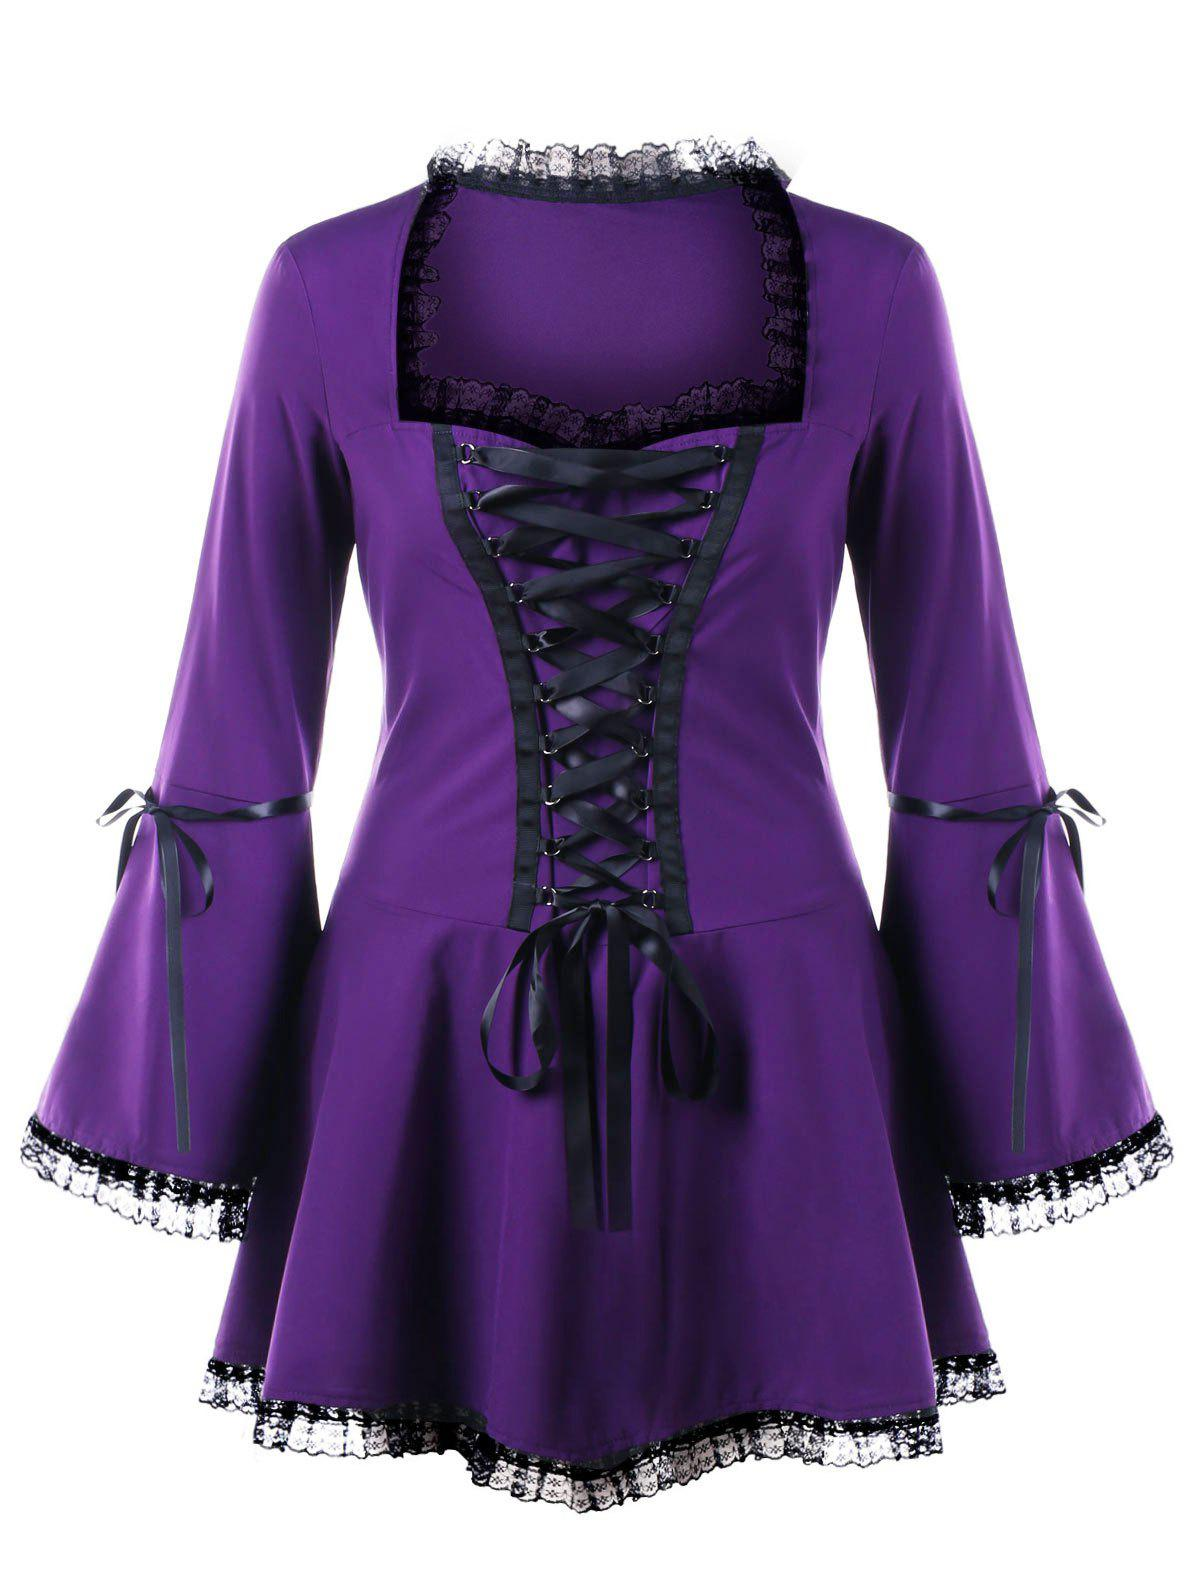 Halloween Plus Size Flare Sleeve Lace Up TopWOMEN<br><br>Size: 5XL; Color: PURPLE; Material: Polyester; Shirt Length: Long; Sleeve Length: Full; Collar: Sweetheart Neck; Style: Gothic; Season: Fall,Spring; Embellishment: Lace; Pattern Type: Solid; Weight: 0.3000kg; Package Contents: 1 x Top;